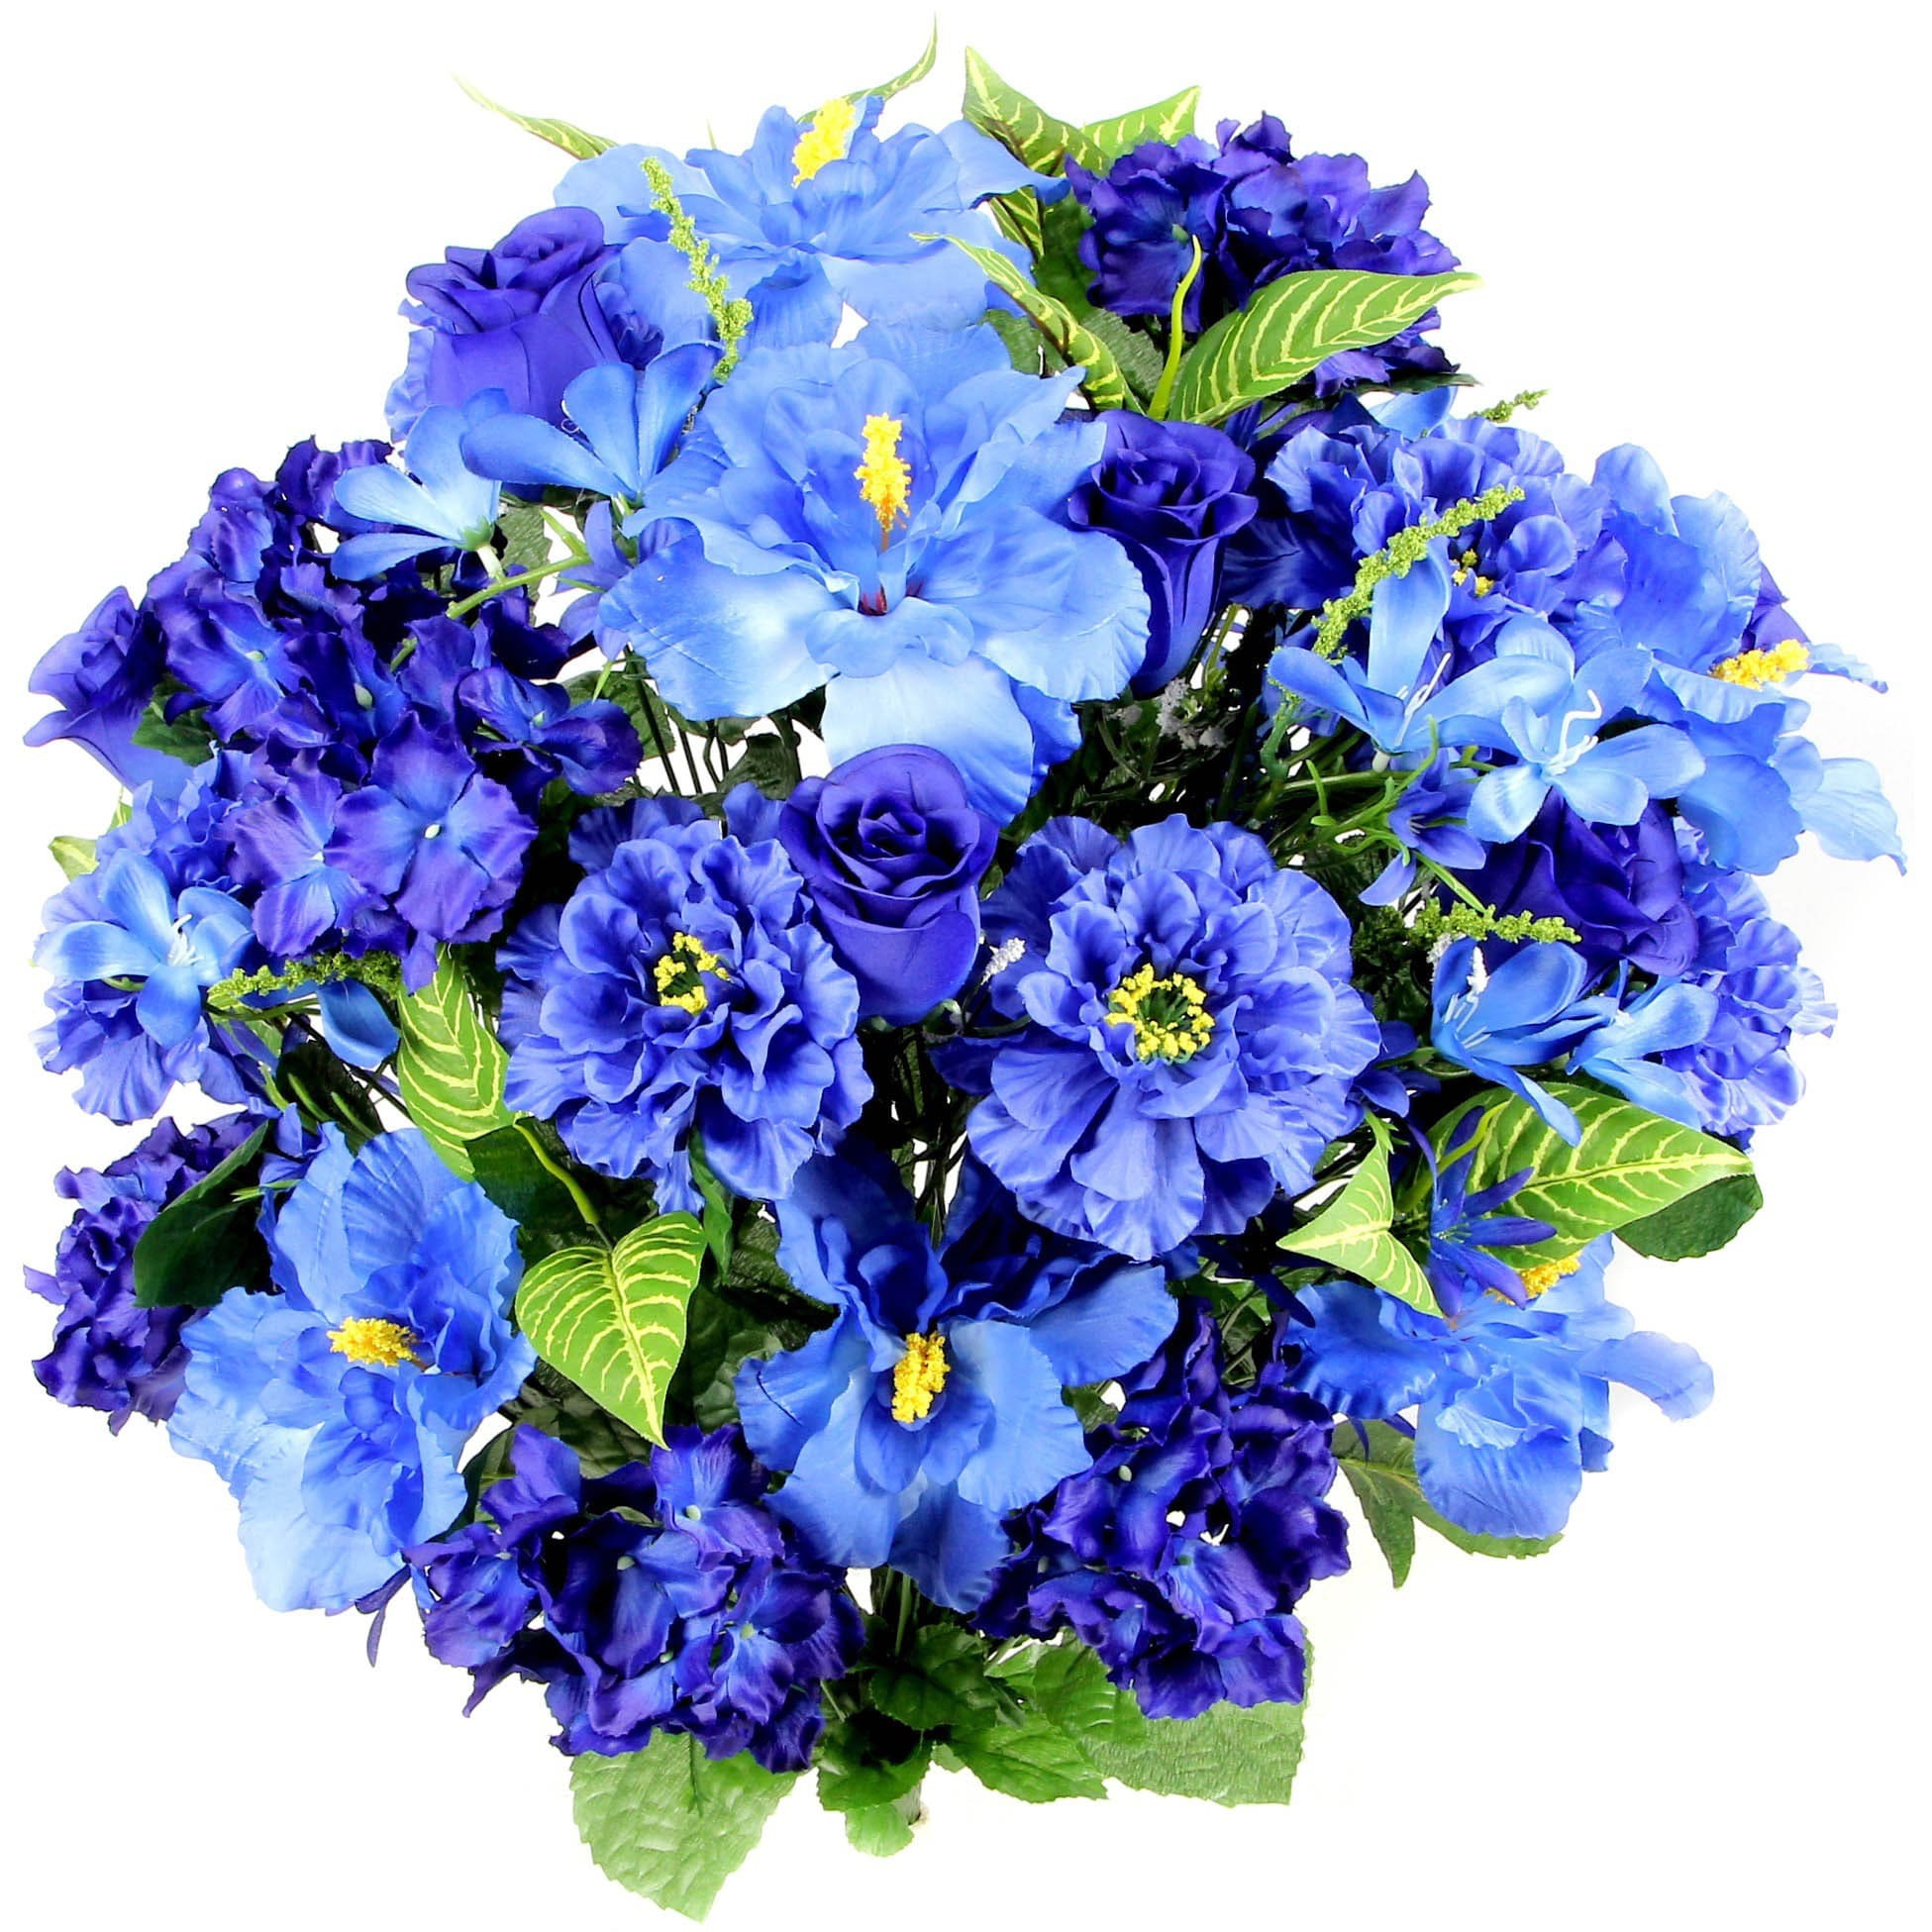 Shop admired by nature blue and green hibiscus rosebuds freesias shop admired by nature blue and green hibiscus rosebuds freesias and filler flowers 36 stem artificial mixed bush free shipping on orders over 45 izmirmasajfo